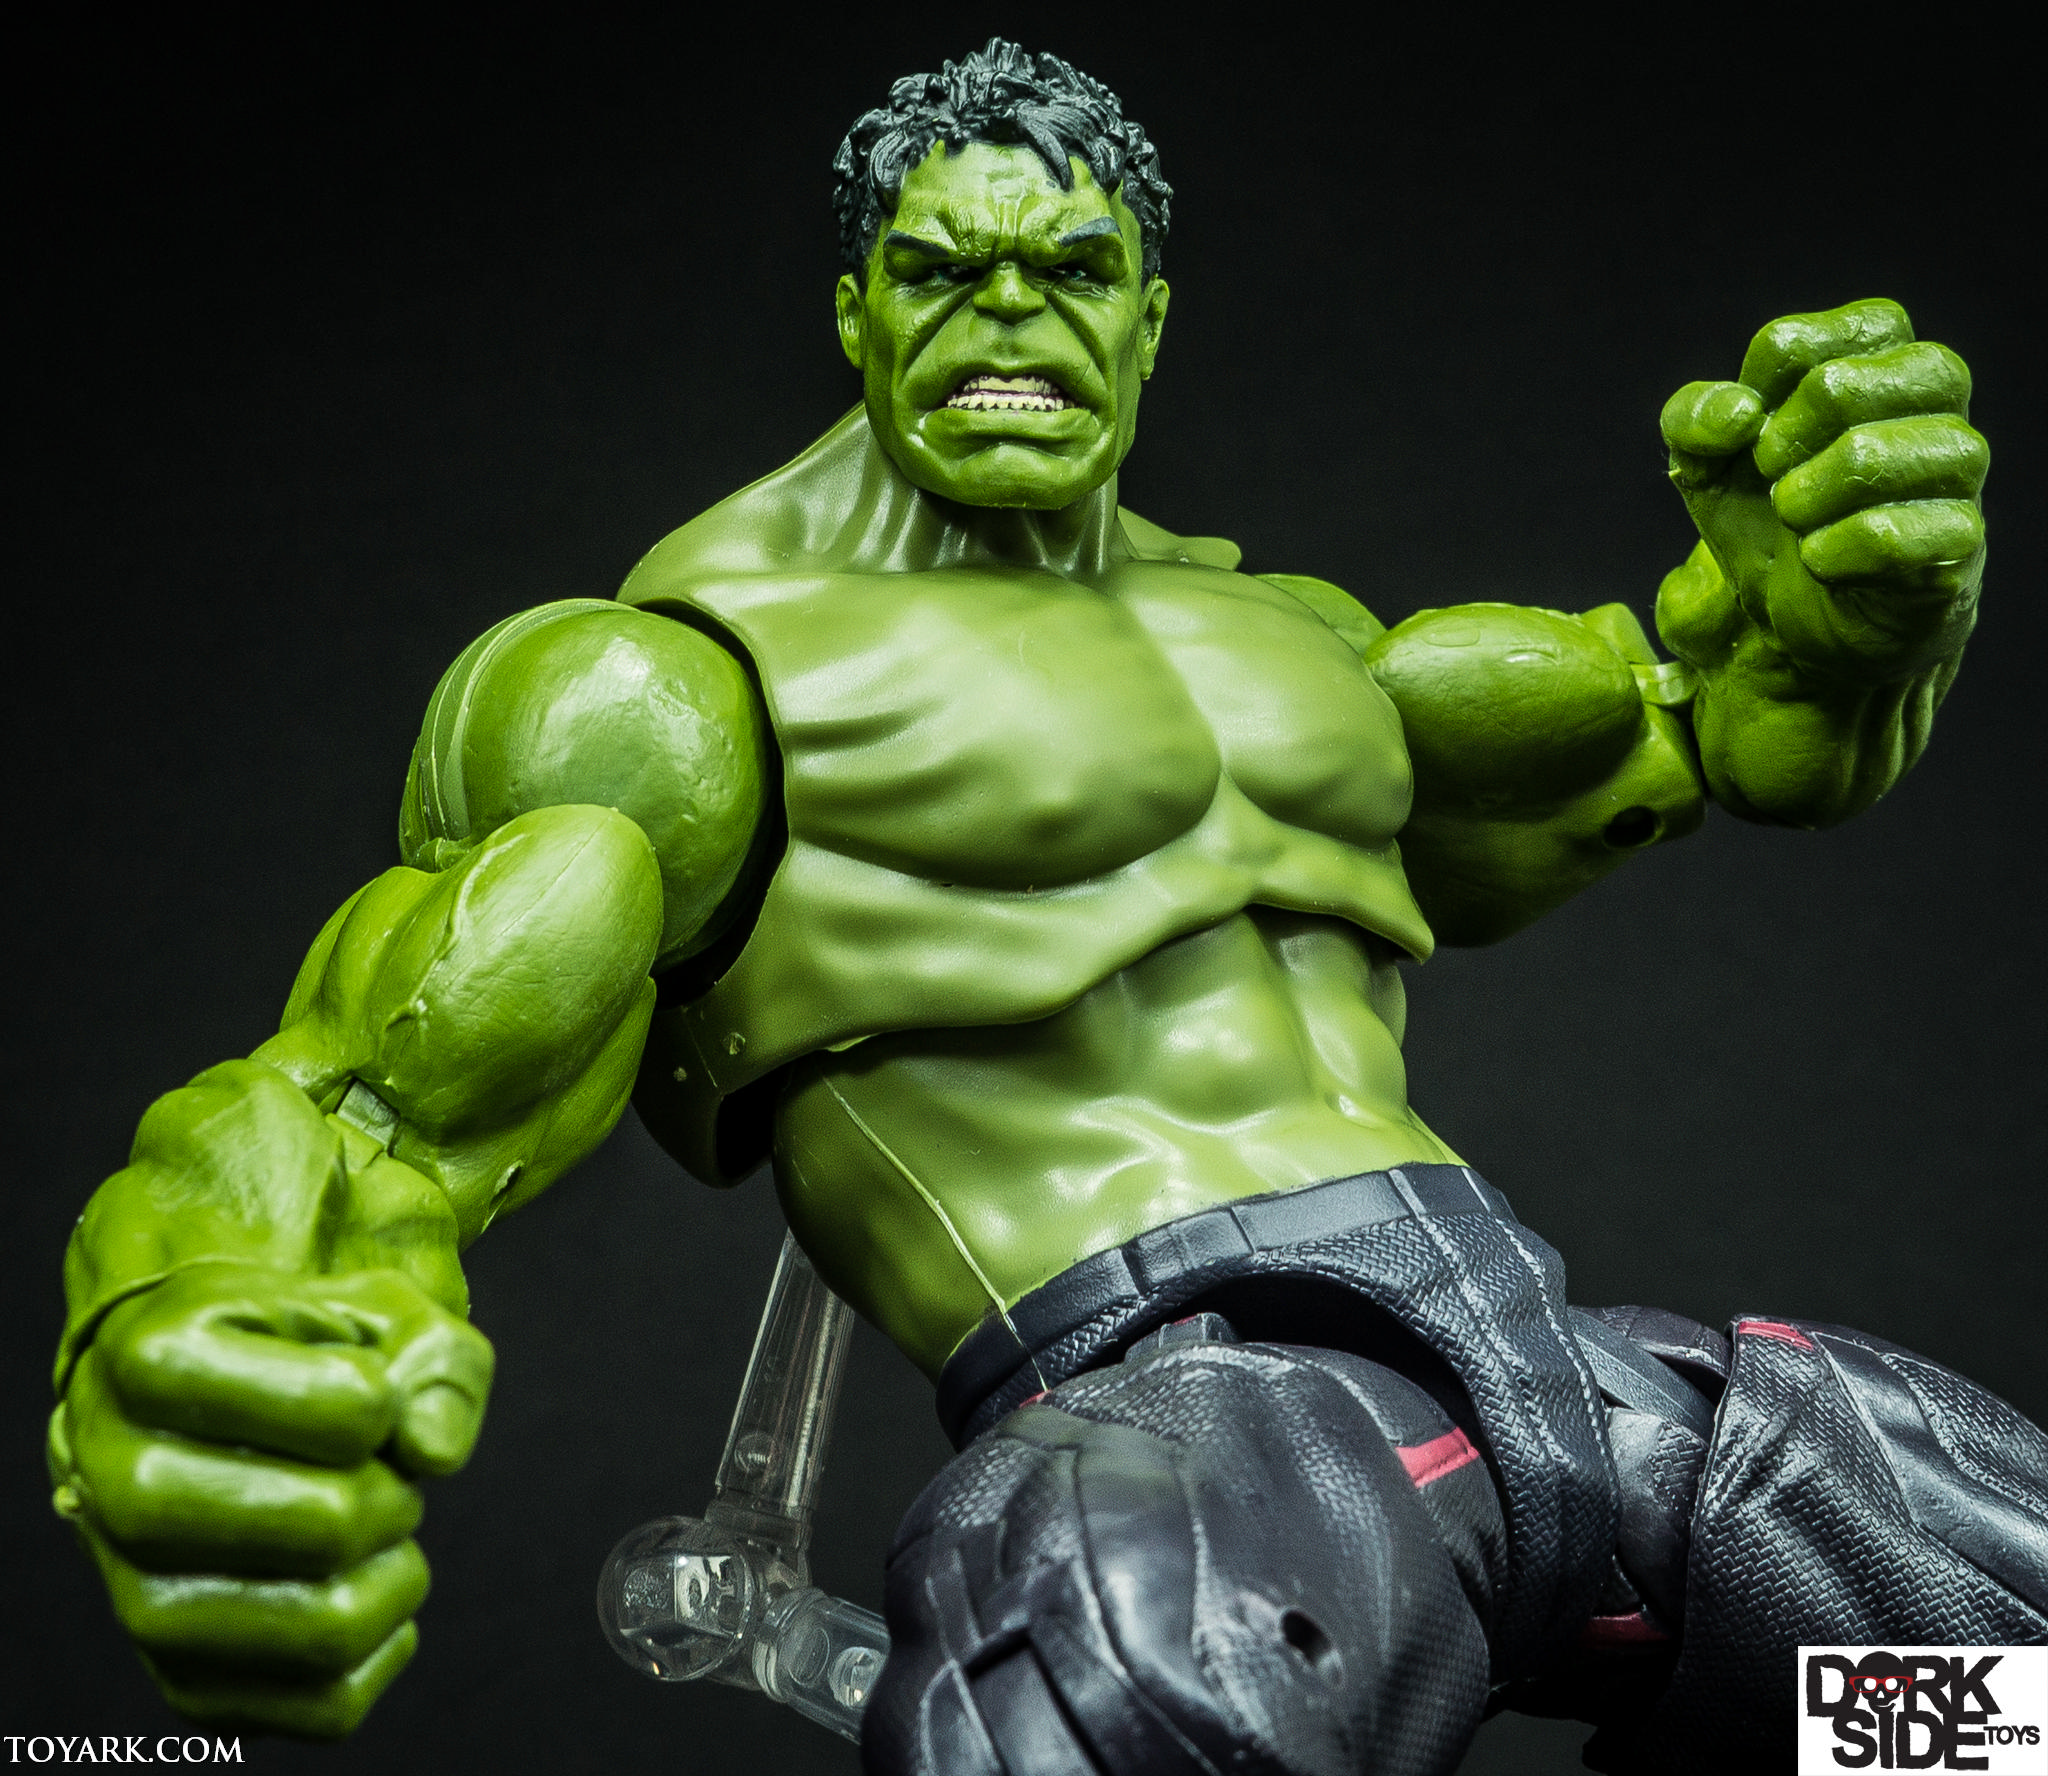 Marvel Legends Avengers Movie Hulk Marvel Legends The Hulk Age of